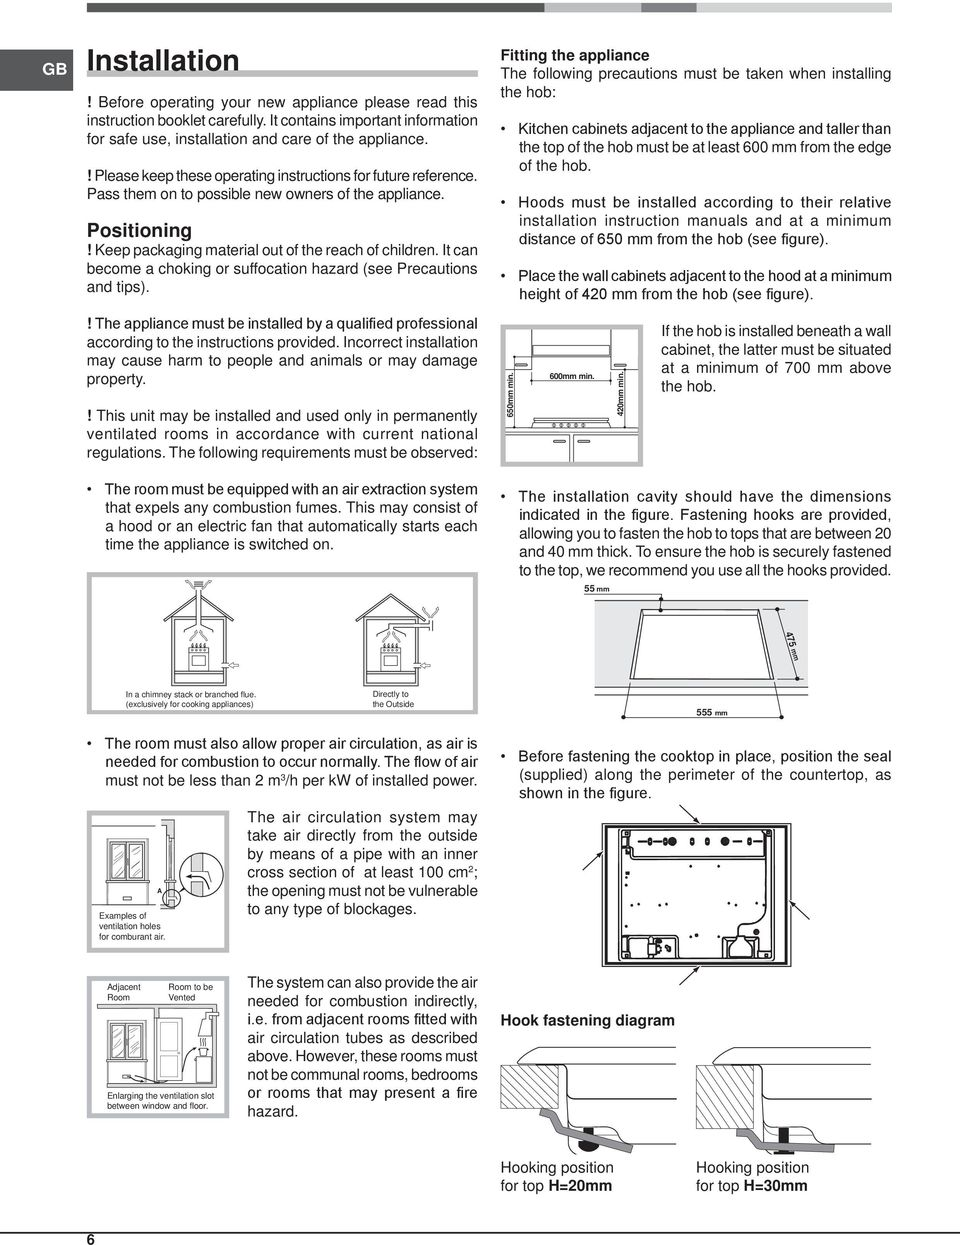 It can become a choking or suffocation hazard (see Precautions and tips).! The appliance must be installed by a qualified professional according to the instructions provided.